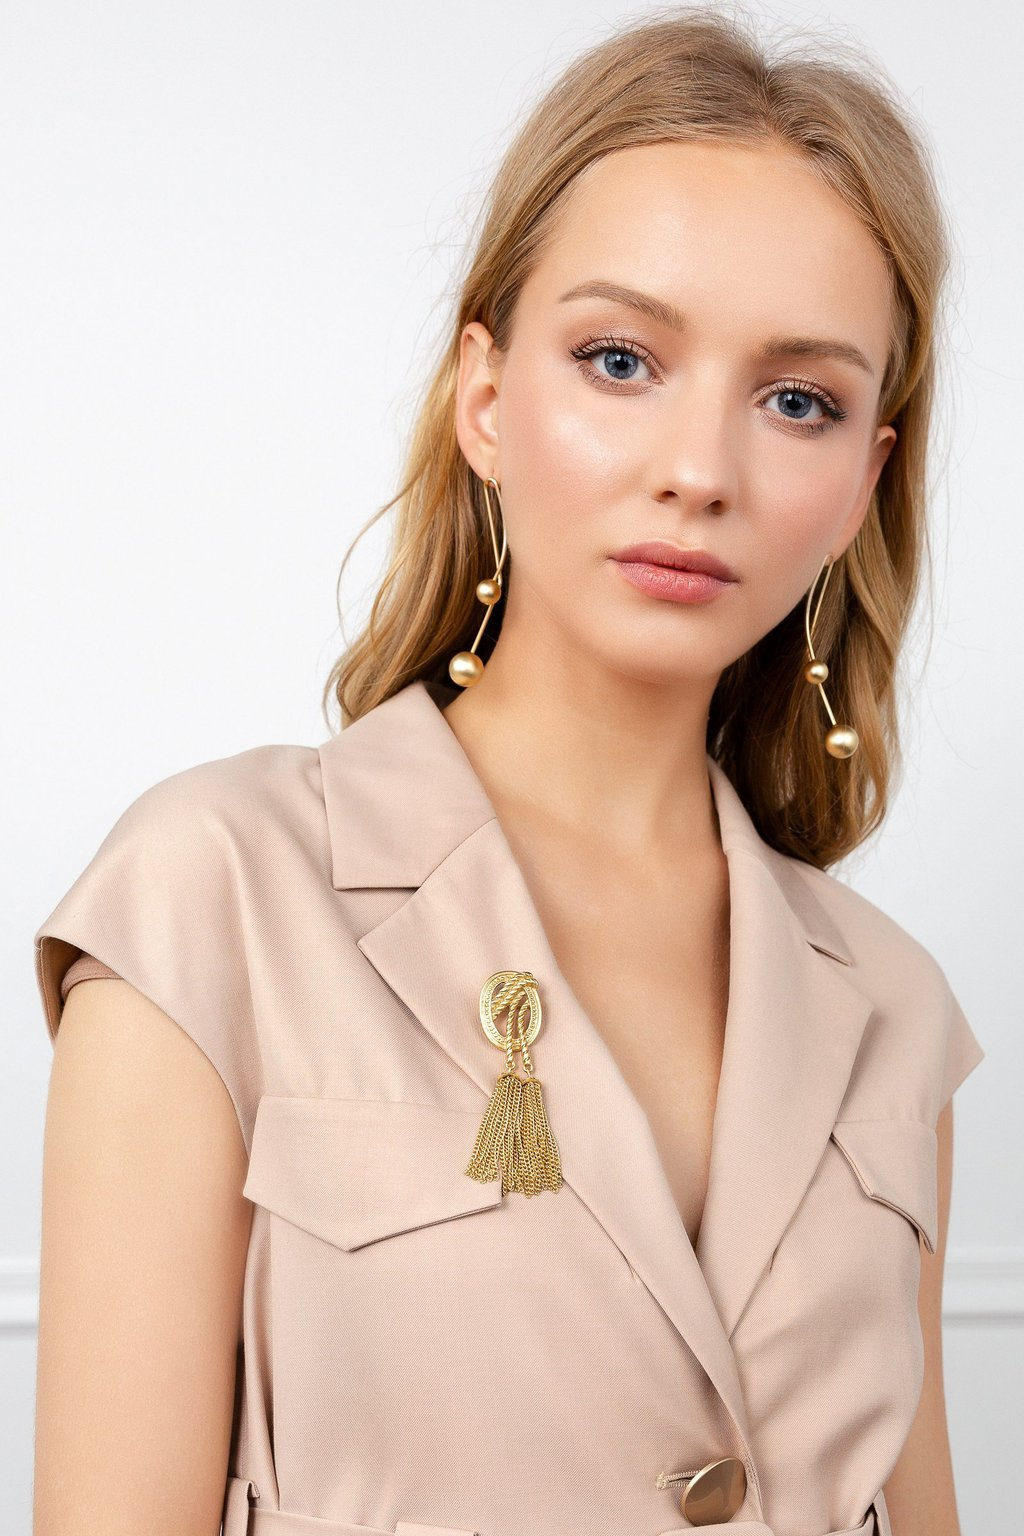 Commander Dress and Regal Brooch by J.ING women's fashion and accessories